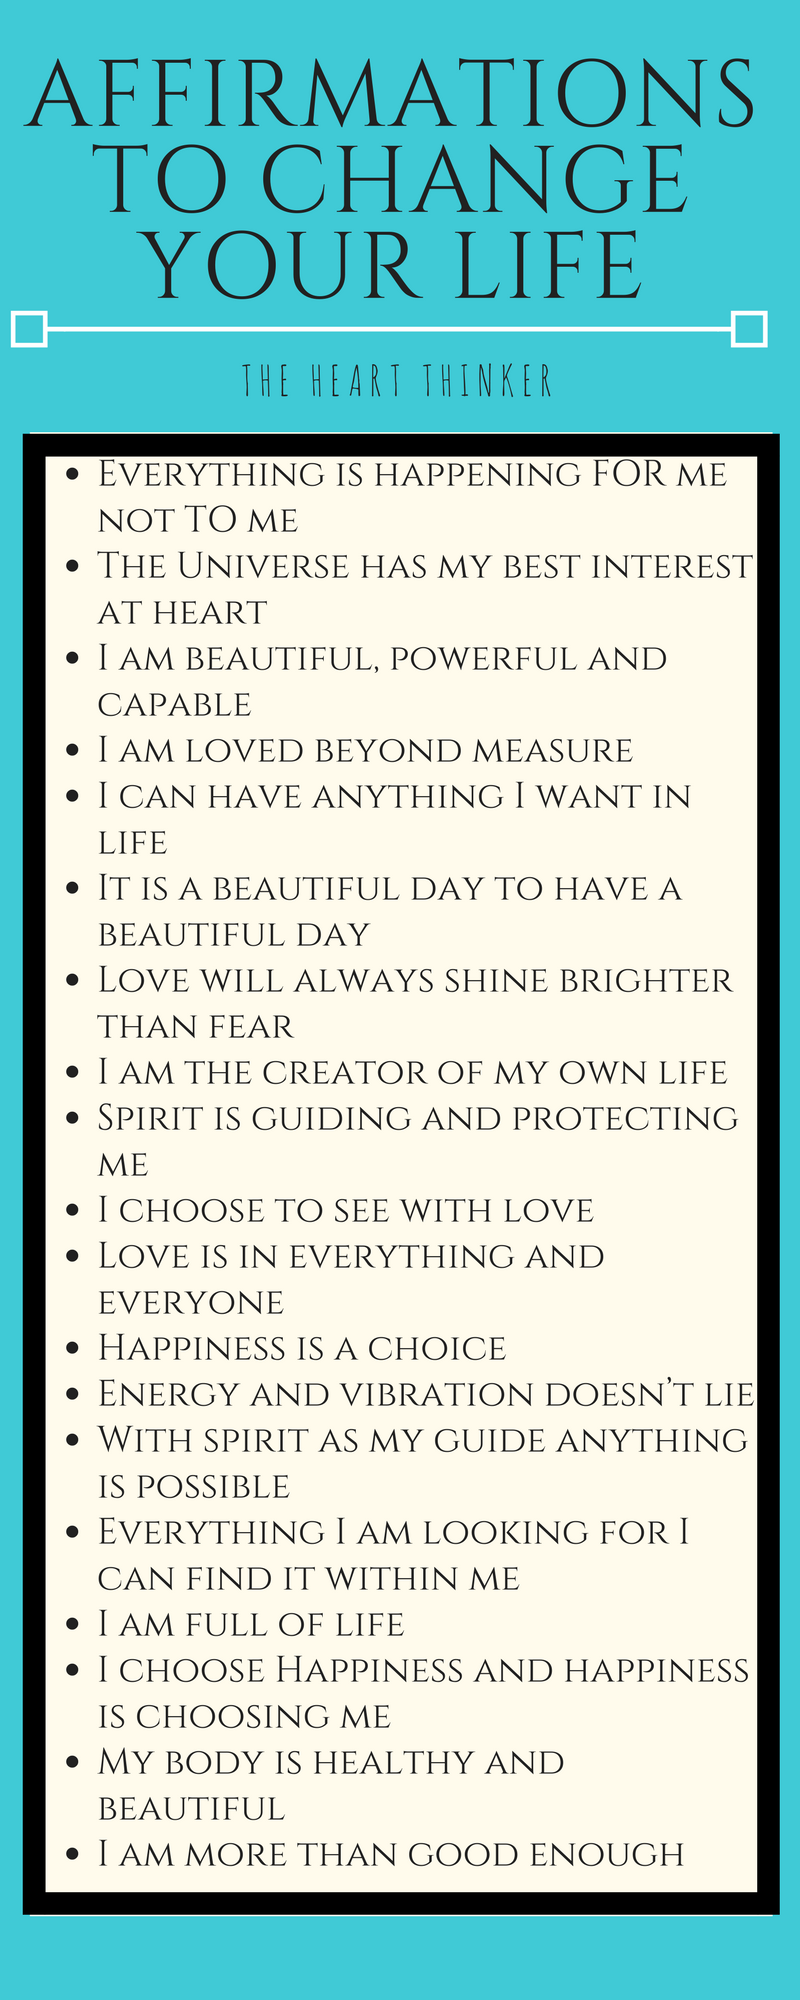 Affirmations to change your mindset and life